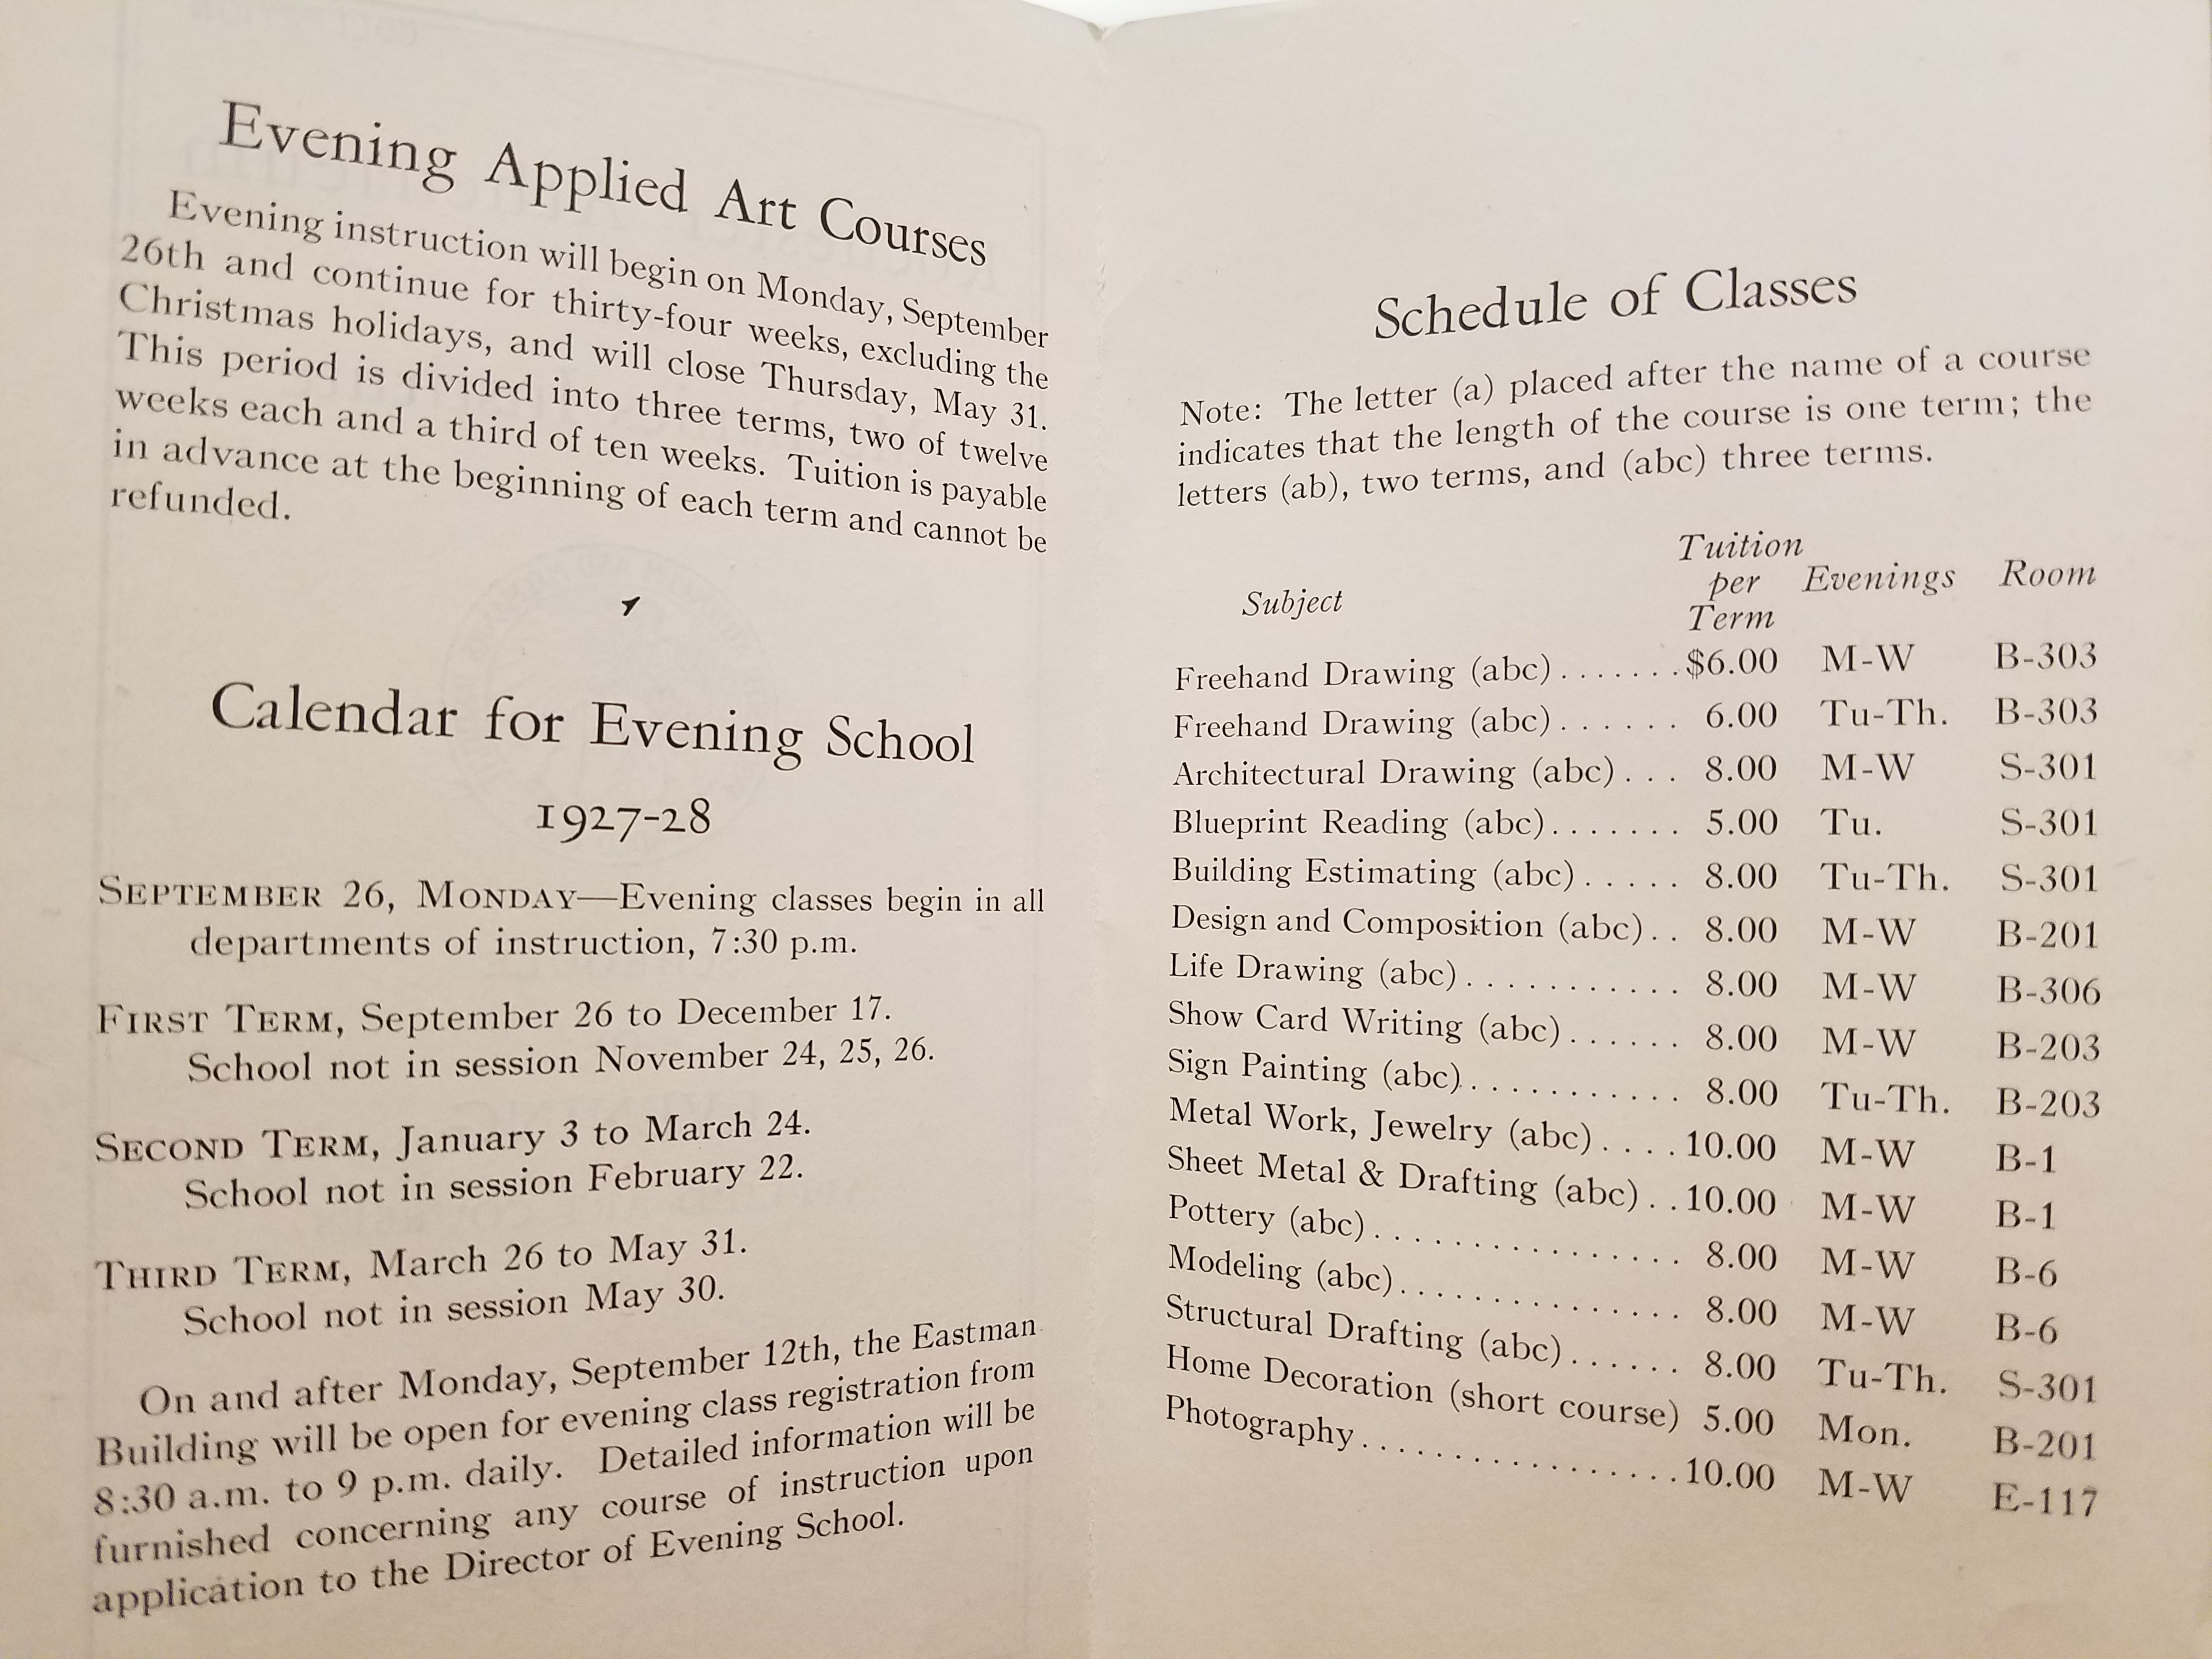 Evening Applied Arts Course Handout 1925 26 Course Schedule Evening Courses How To Apply